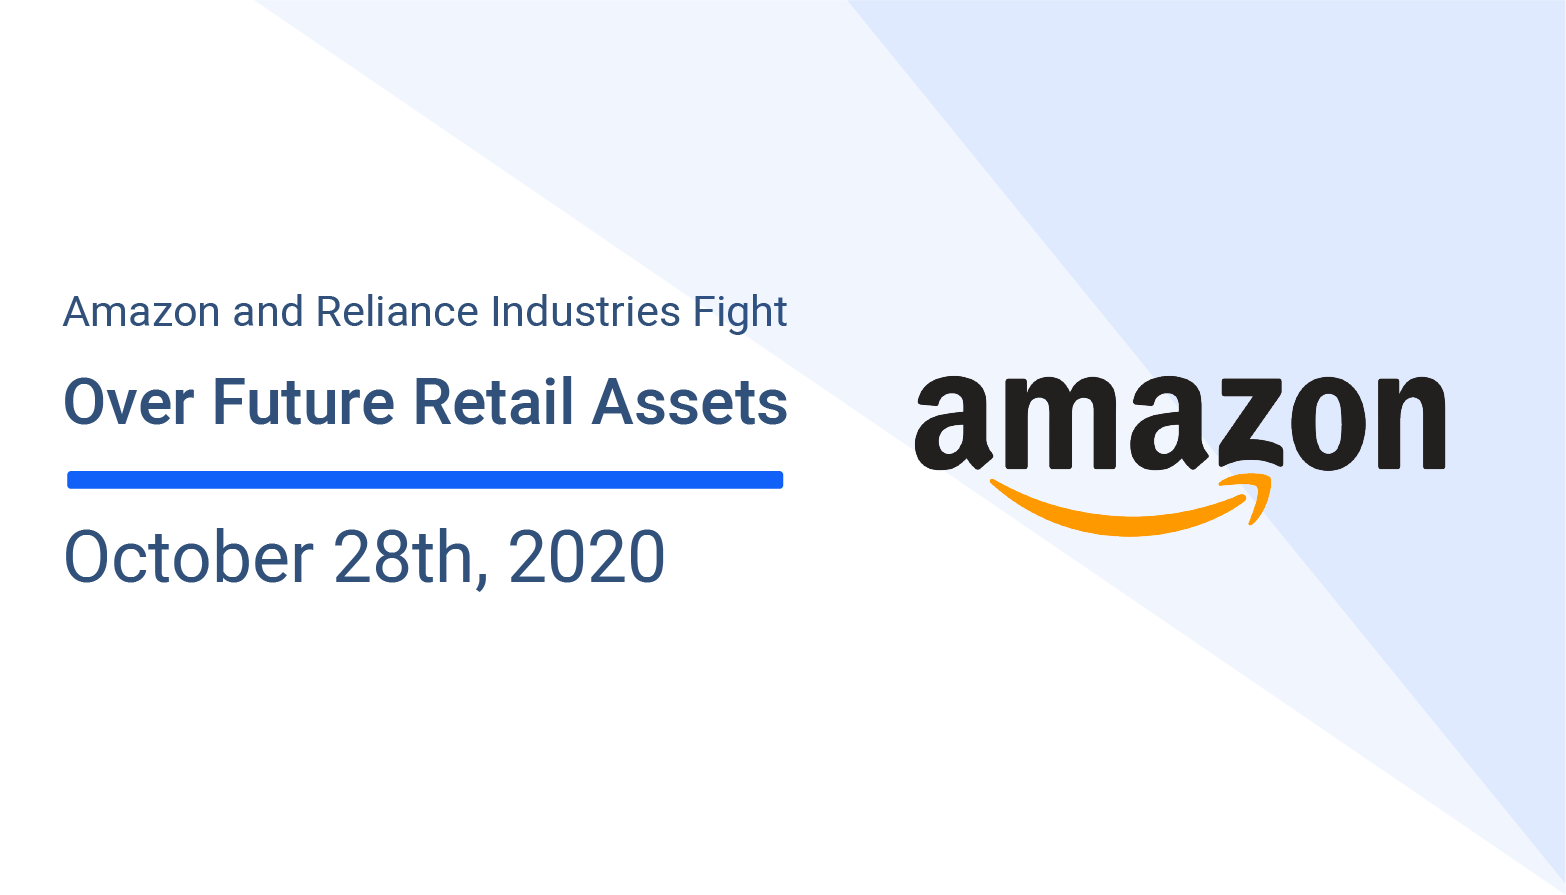 Amazon and Reliance Industries Fight Over Future Retail Assets